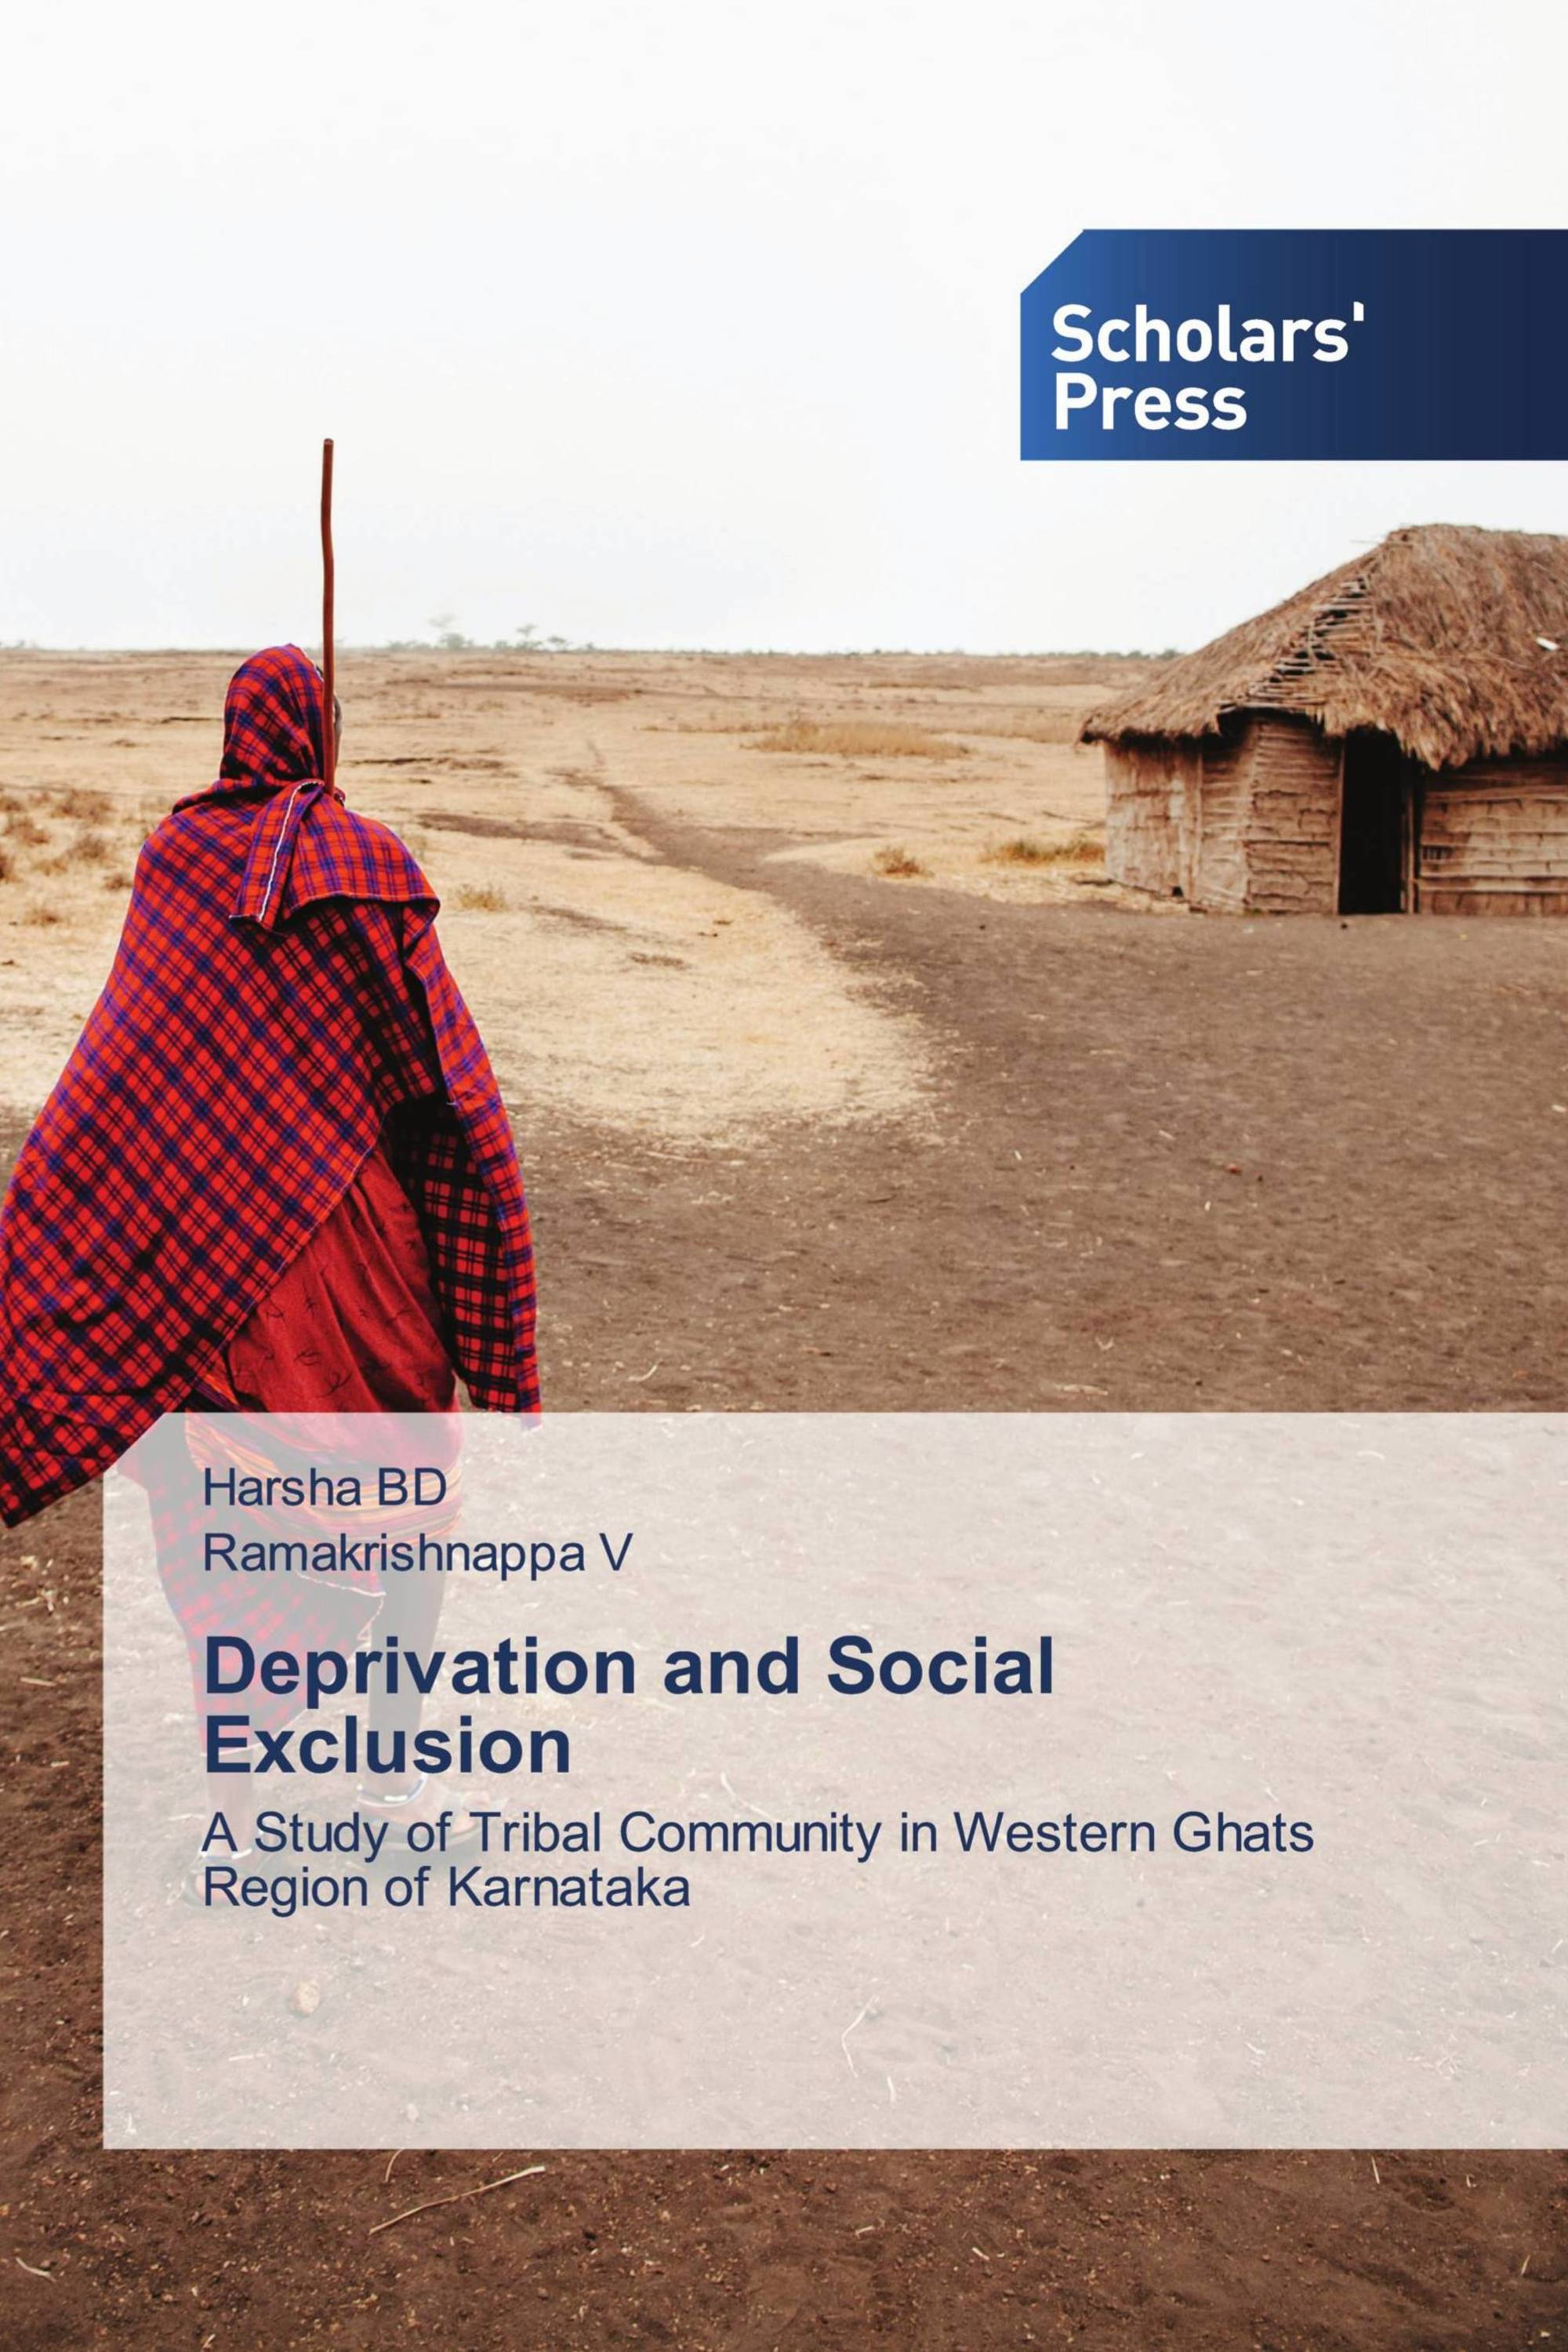 Deprivation and Social Exclusion